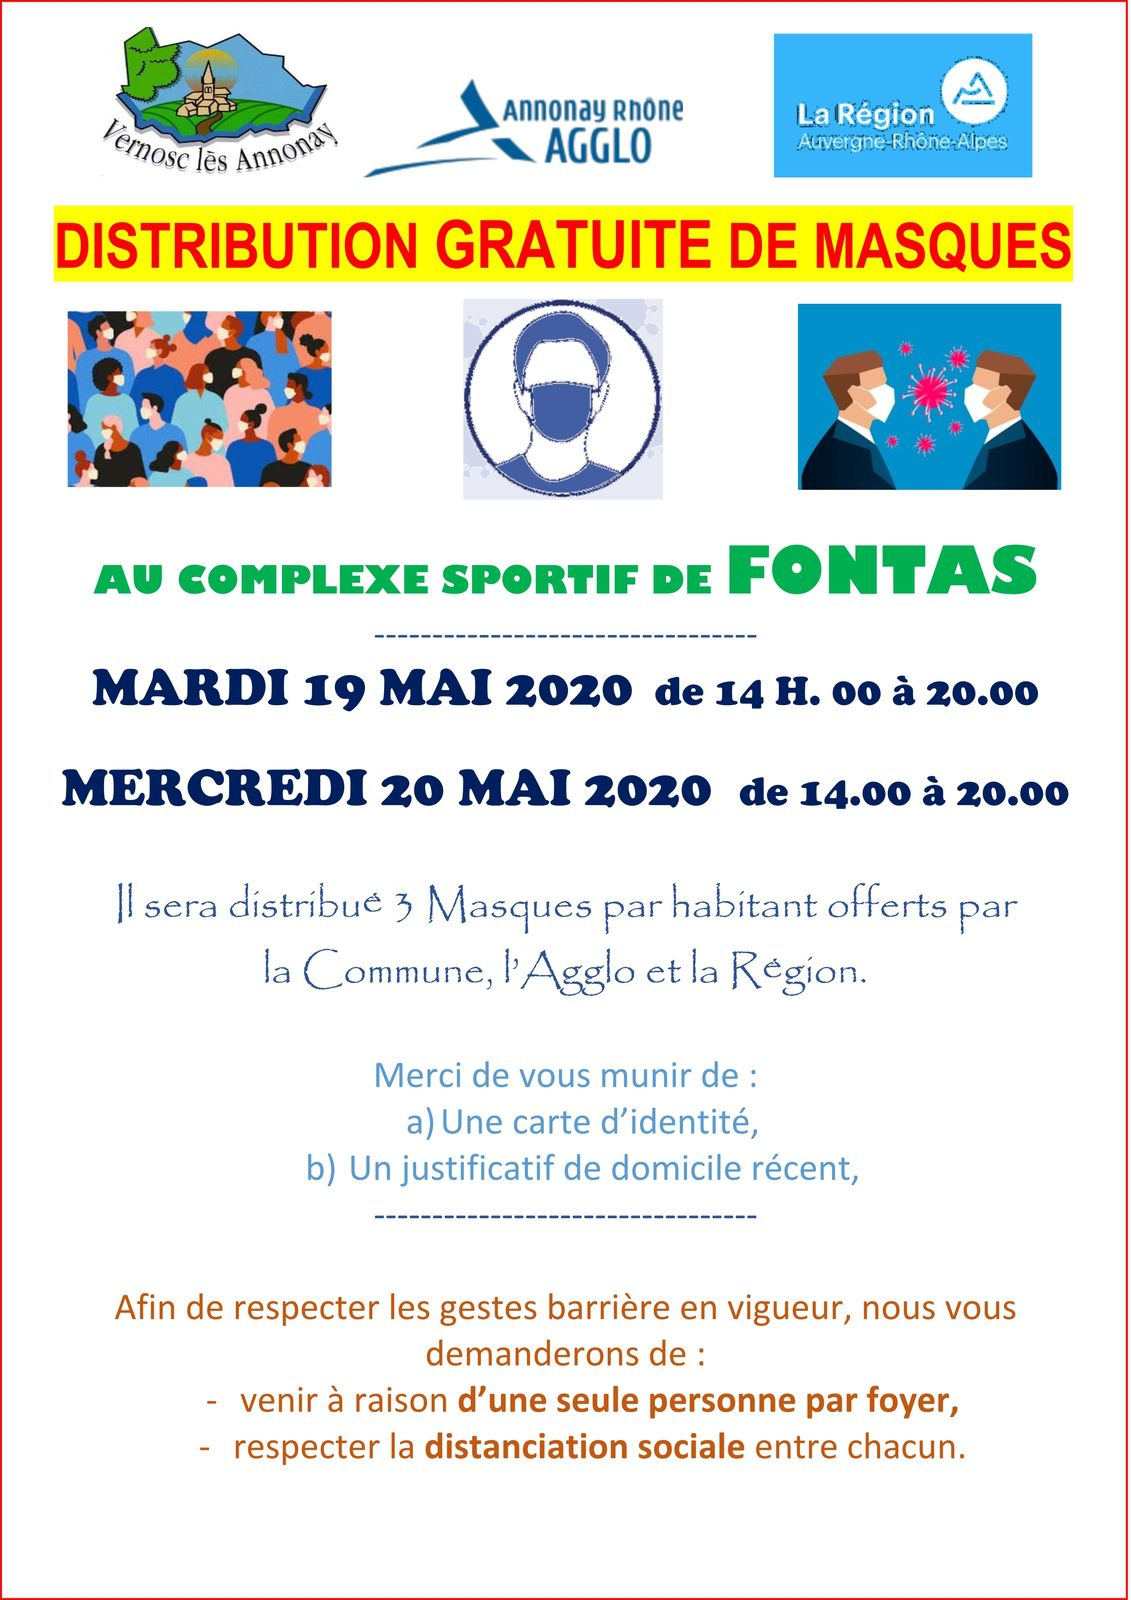 Distribution de masques alternatifs à Vernosc-lès-Annonay